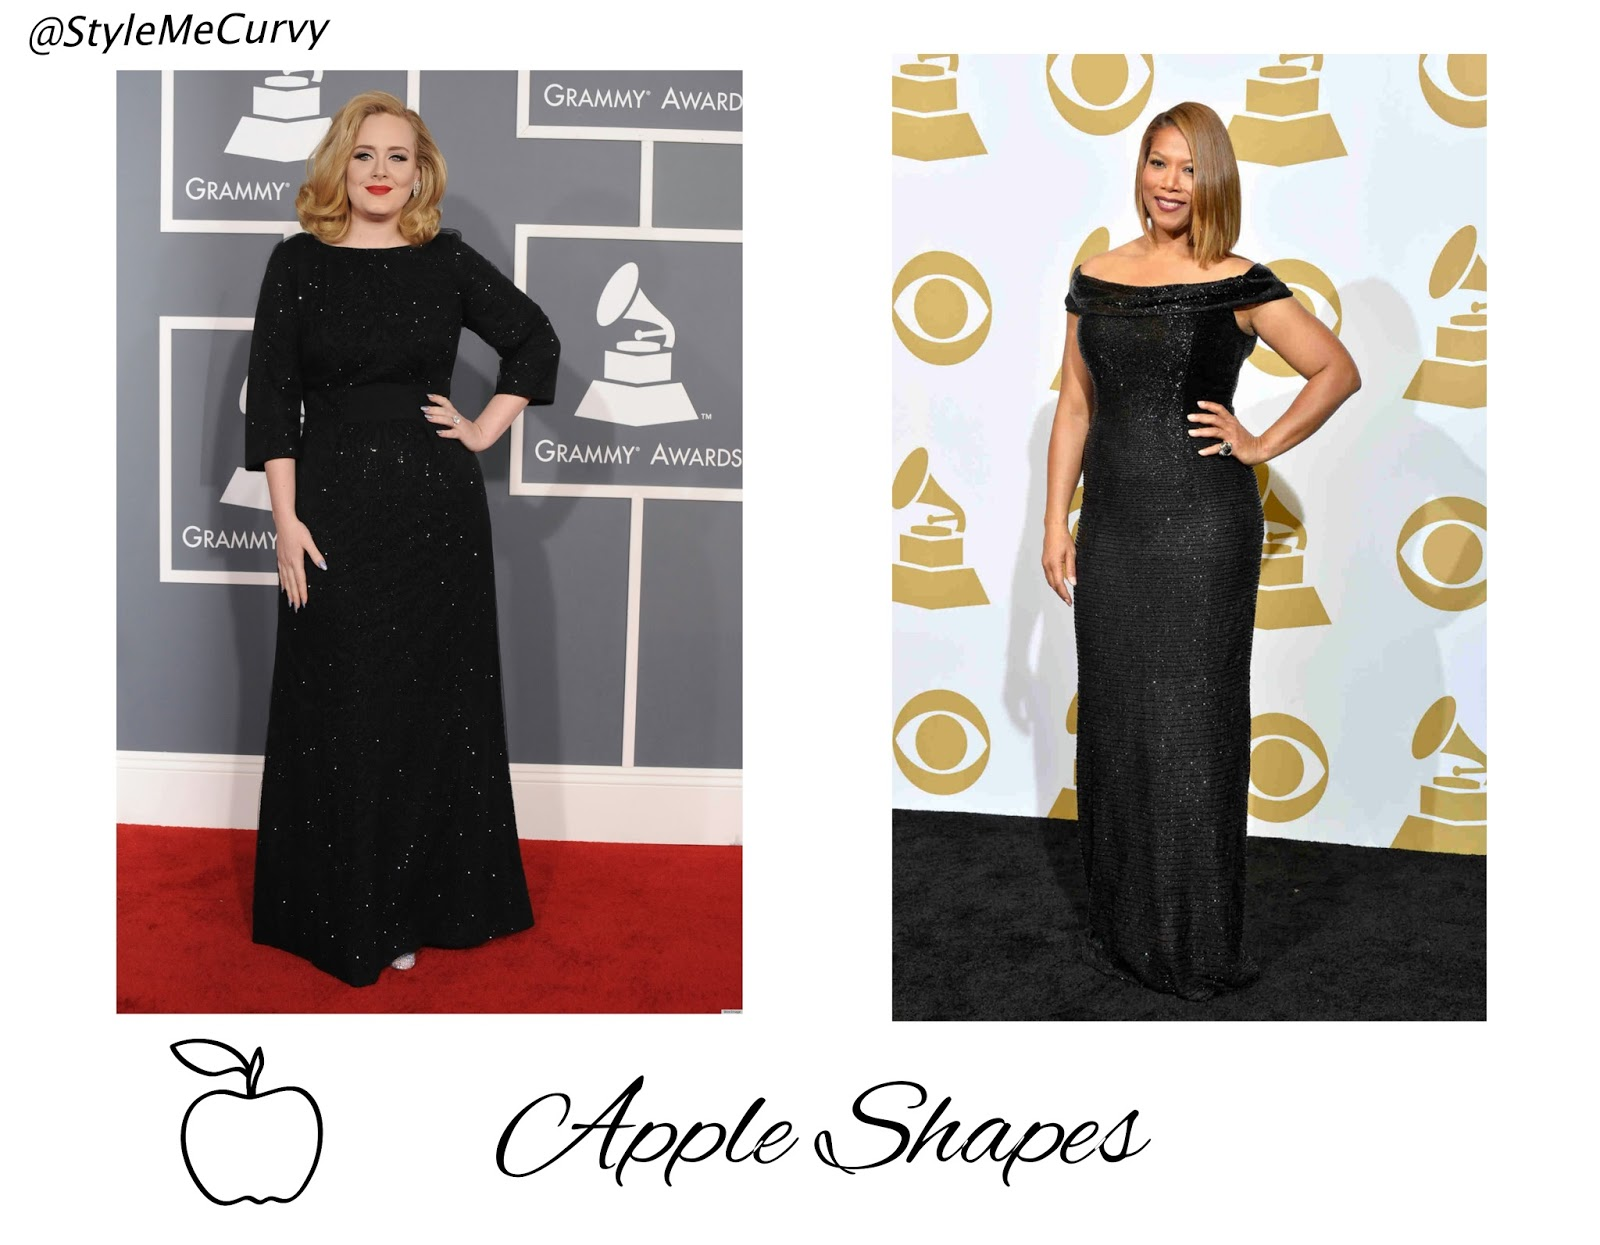 Apple shape celebrities - Adele - Queen Latifah